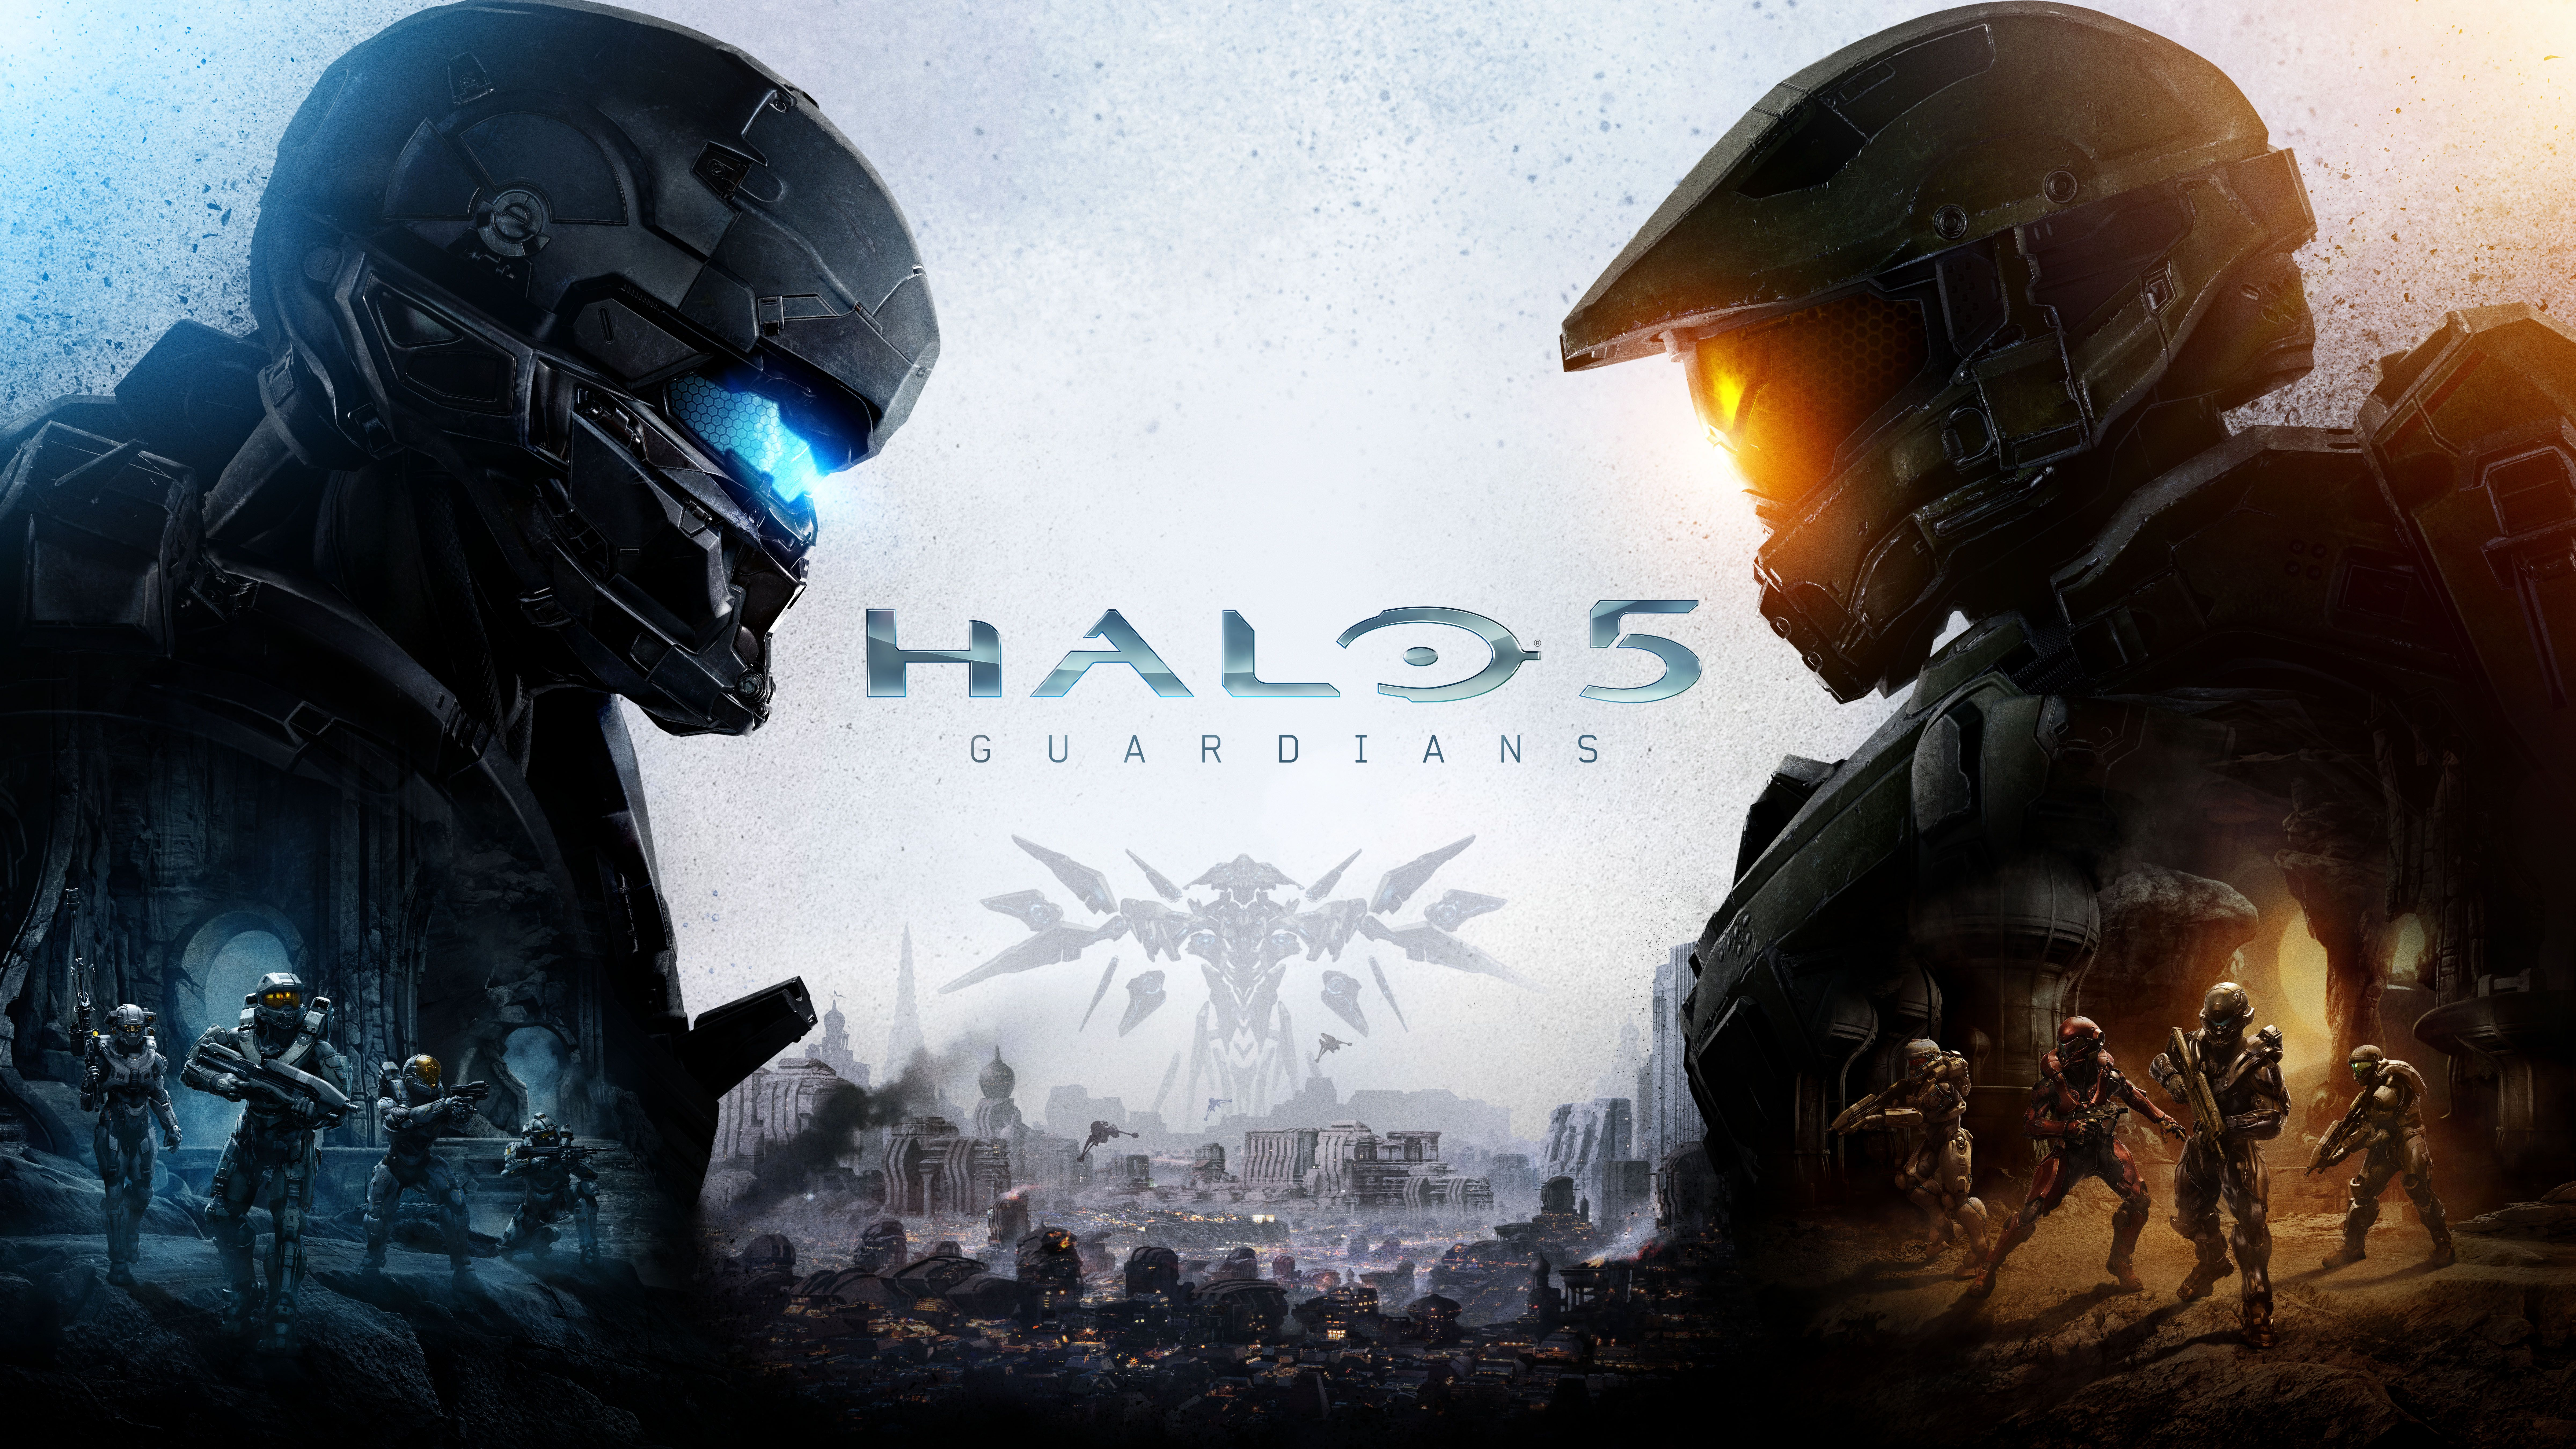 halo 2 wallpaper 1920x1080, halo 5 wallpapers